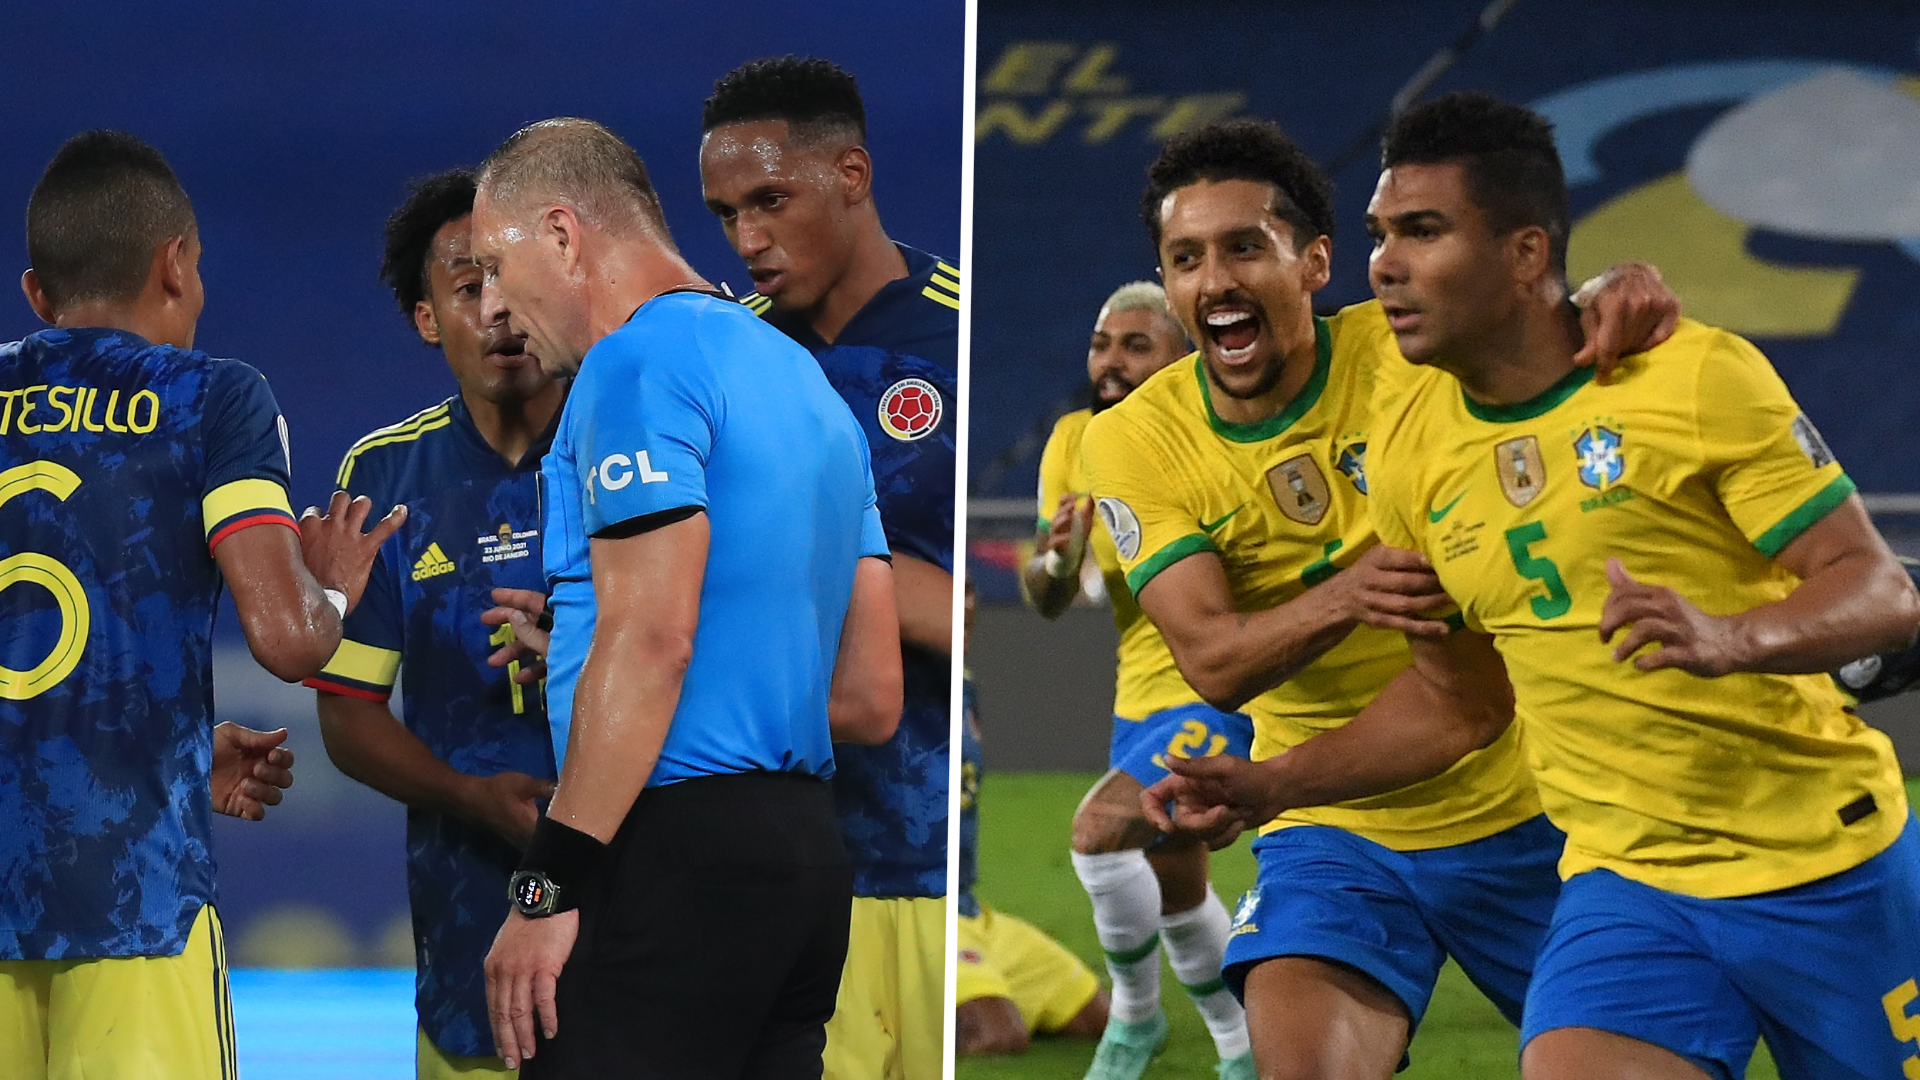 'Absolutely unfair' - Colombia defeated after controversial Copa America ending vs Brazil